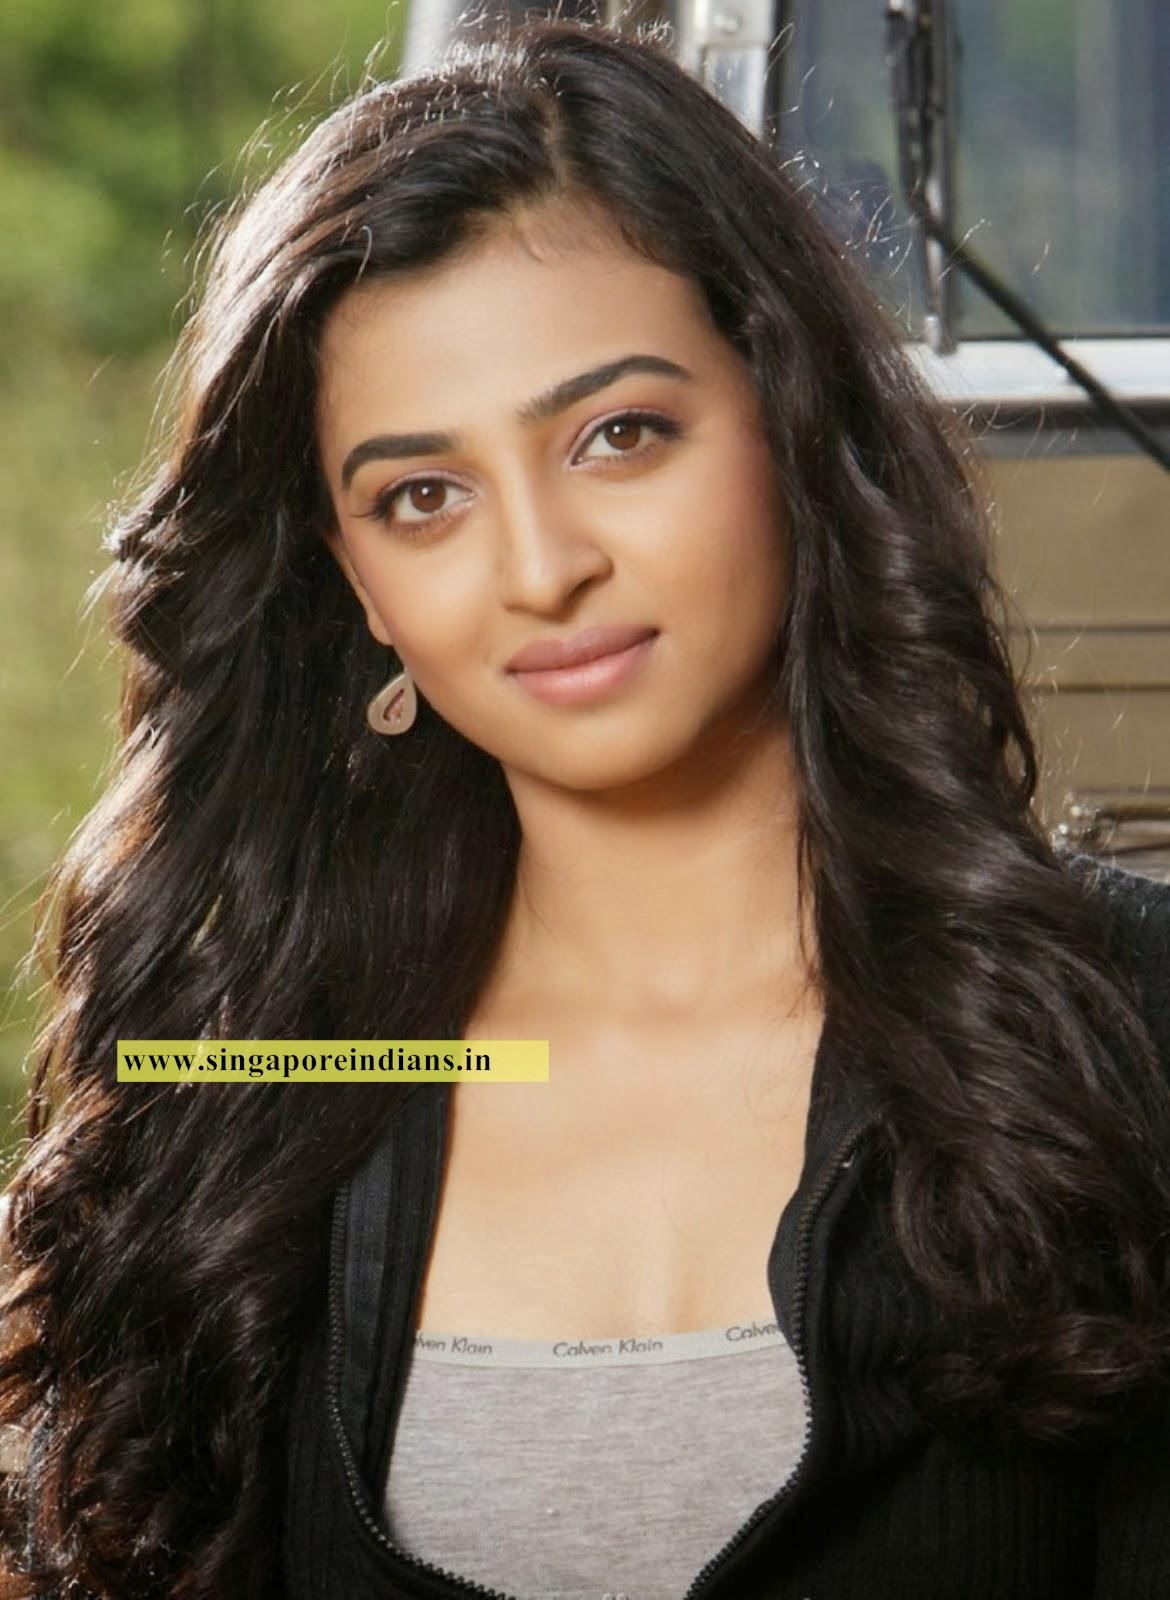 indian girl dating in singapore Indian women seeking western men for marriage indian women are the newest group of ladies to begin signing up with international dating agencies.